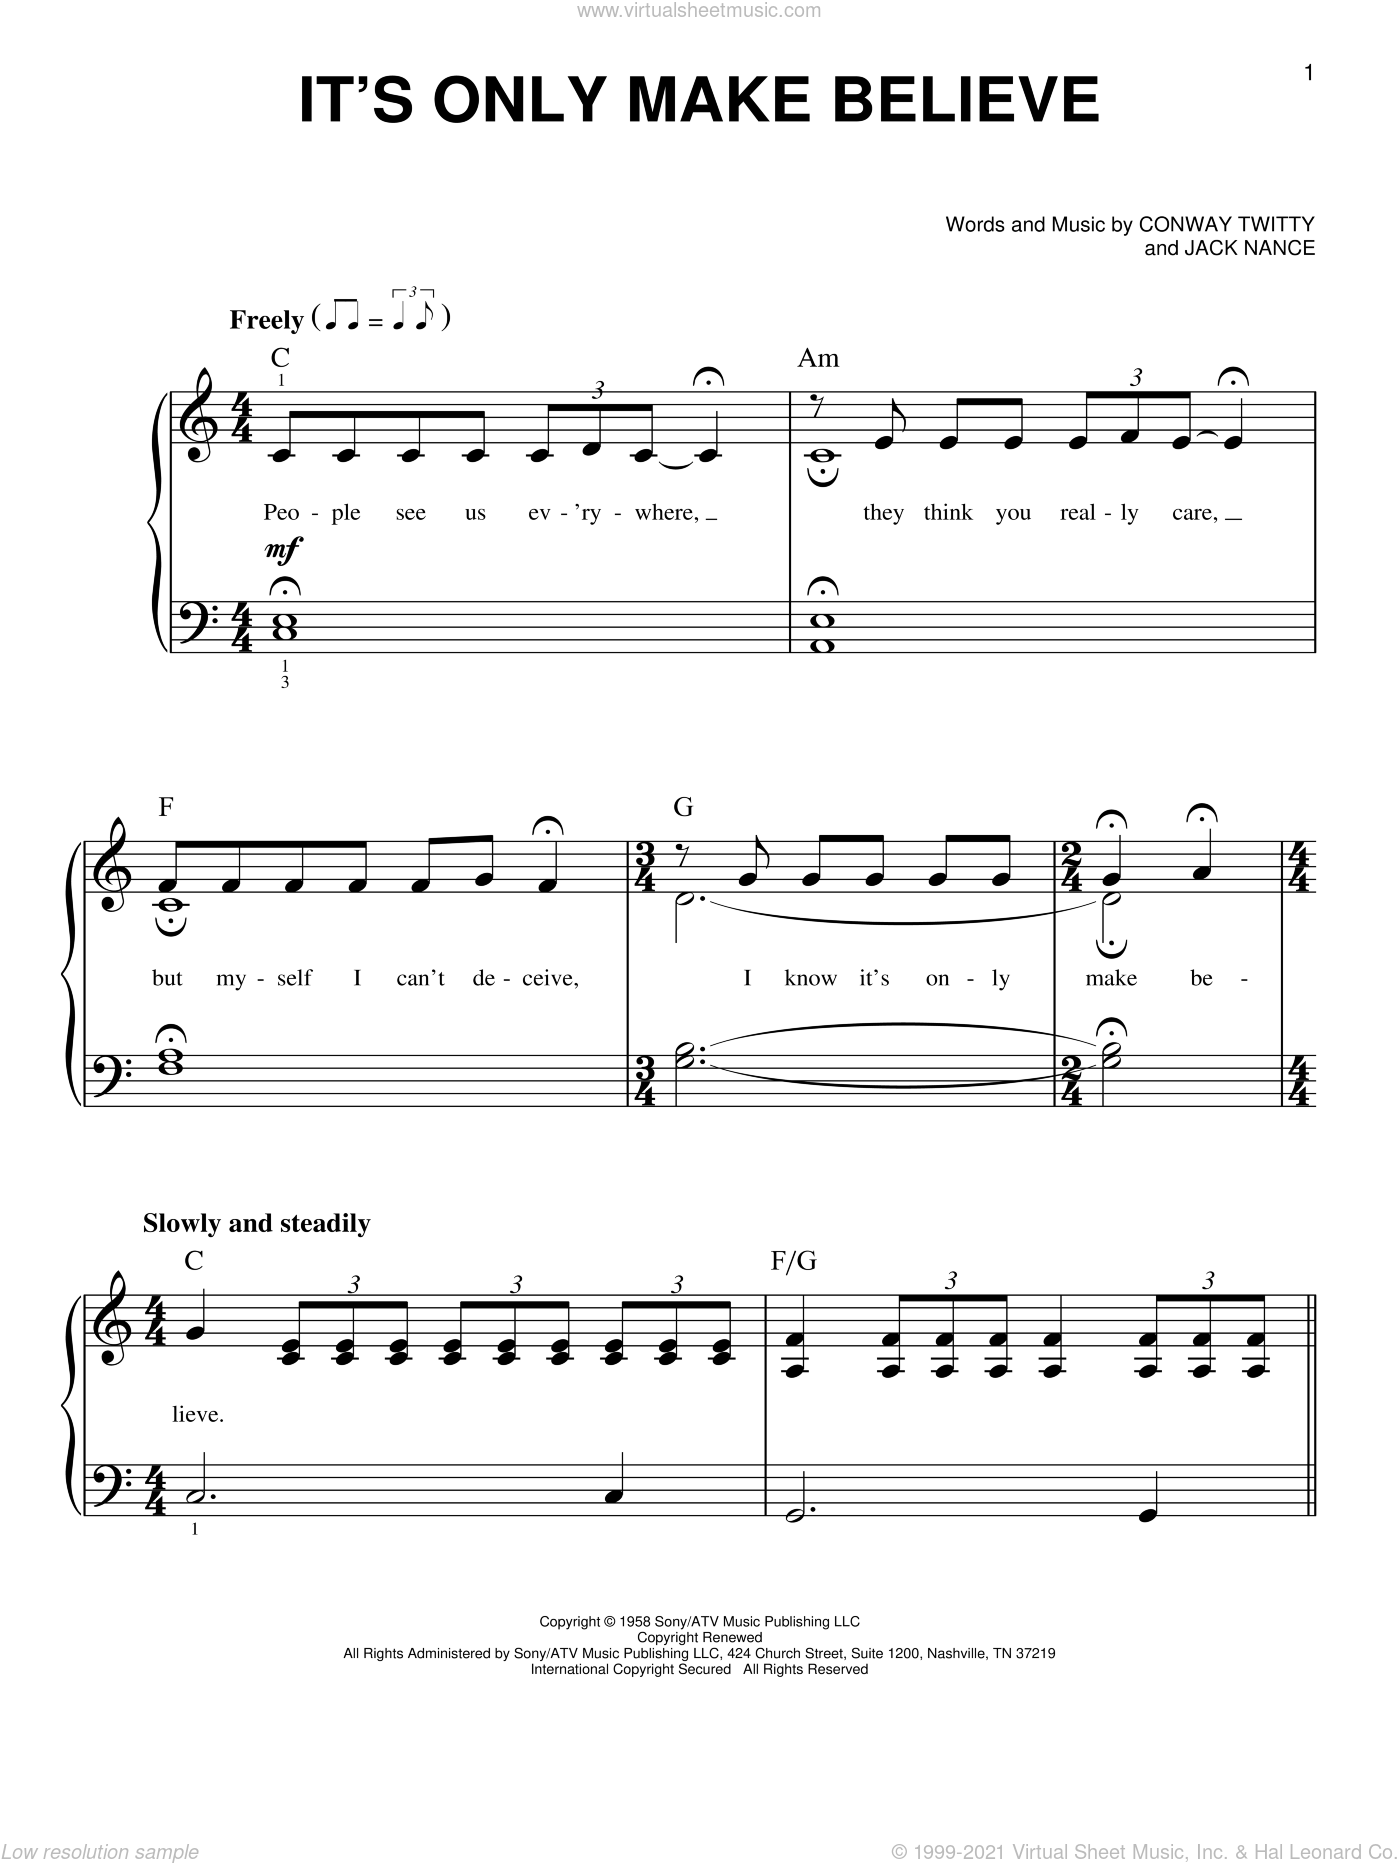 It's Only Make Believe sheet music for piano solo by Conway Twitty, Glen Campbell and Jack Nance, beginner skill level